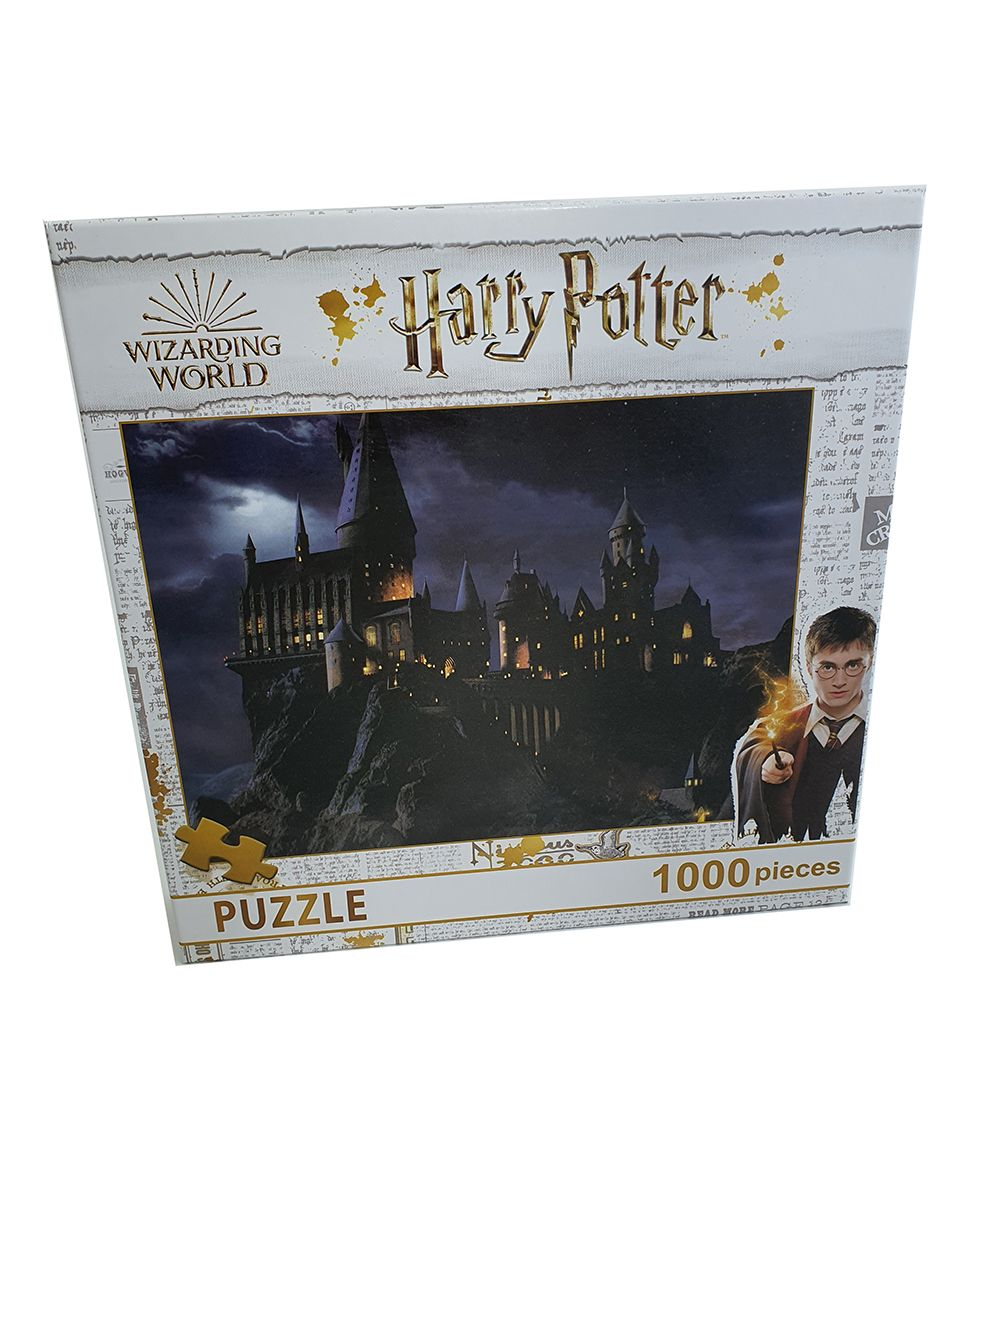 Harry Potter toys and games puzzle